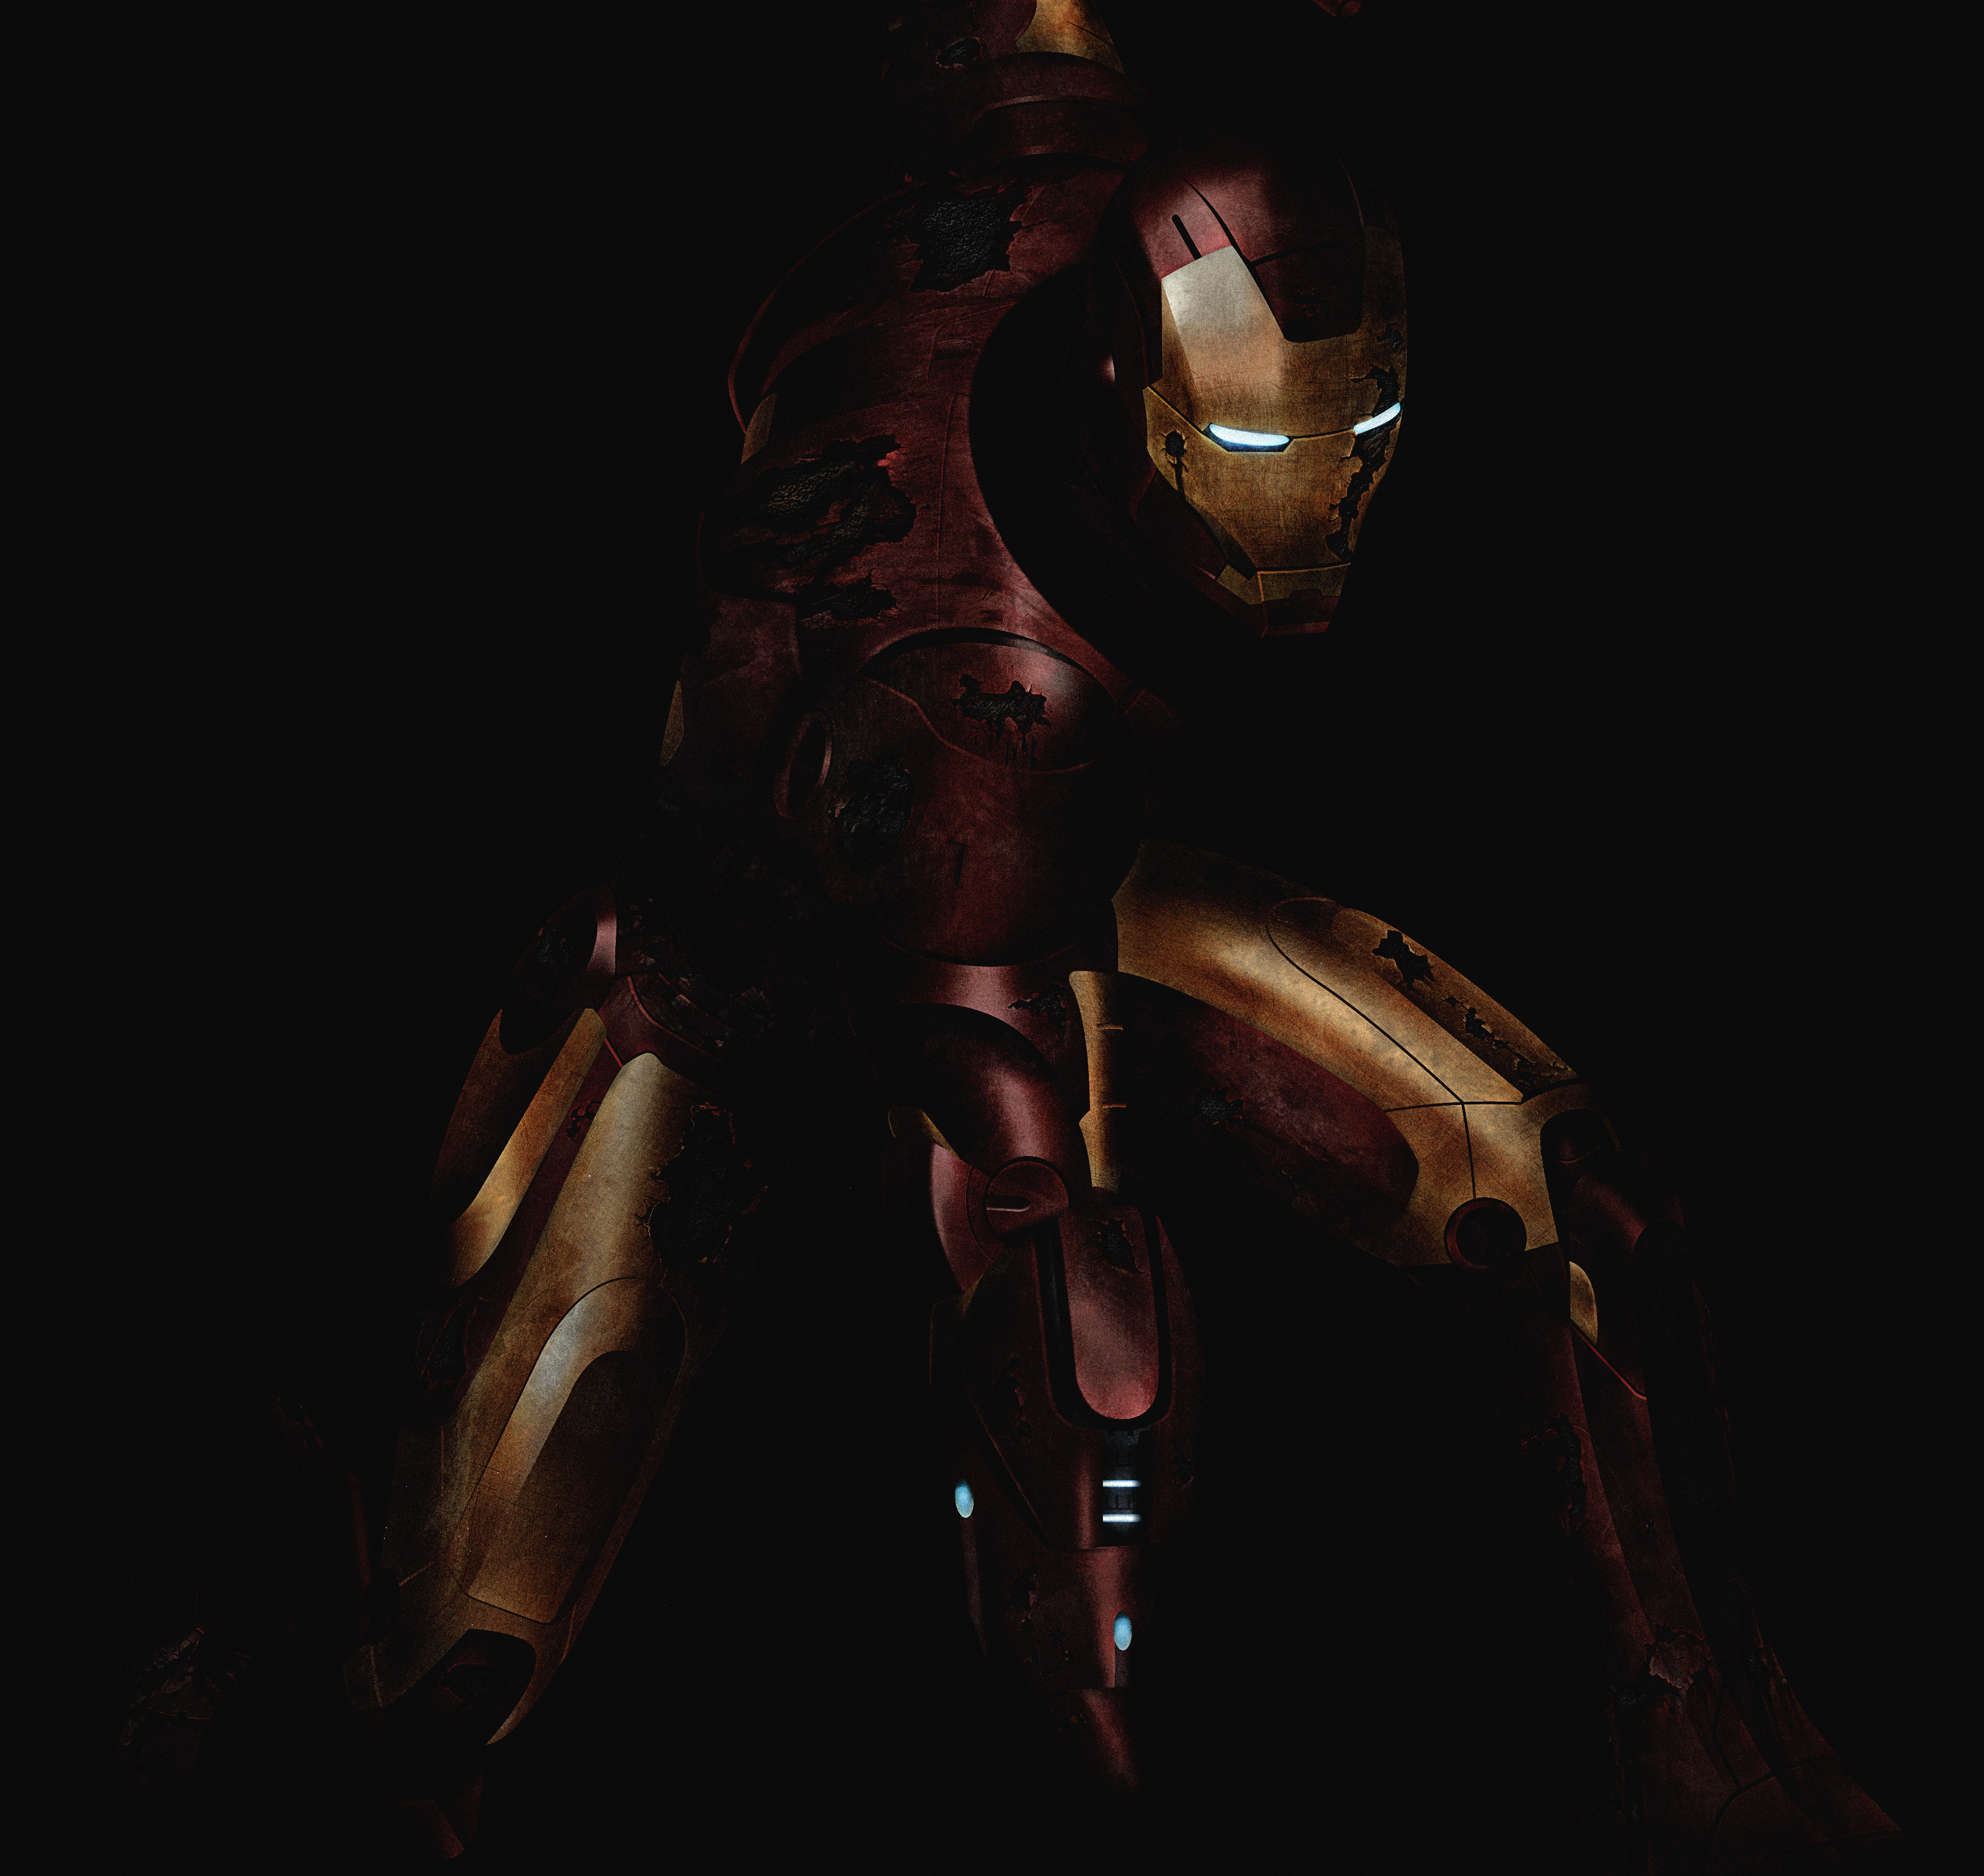 Iron Man Based on Adi Granov's Iron Man Illustration